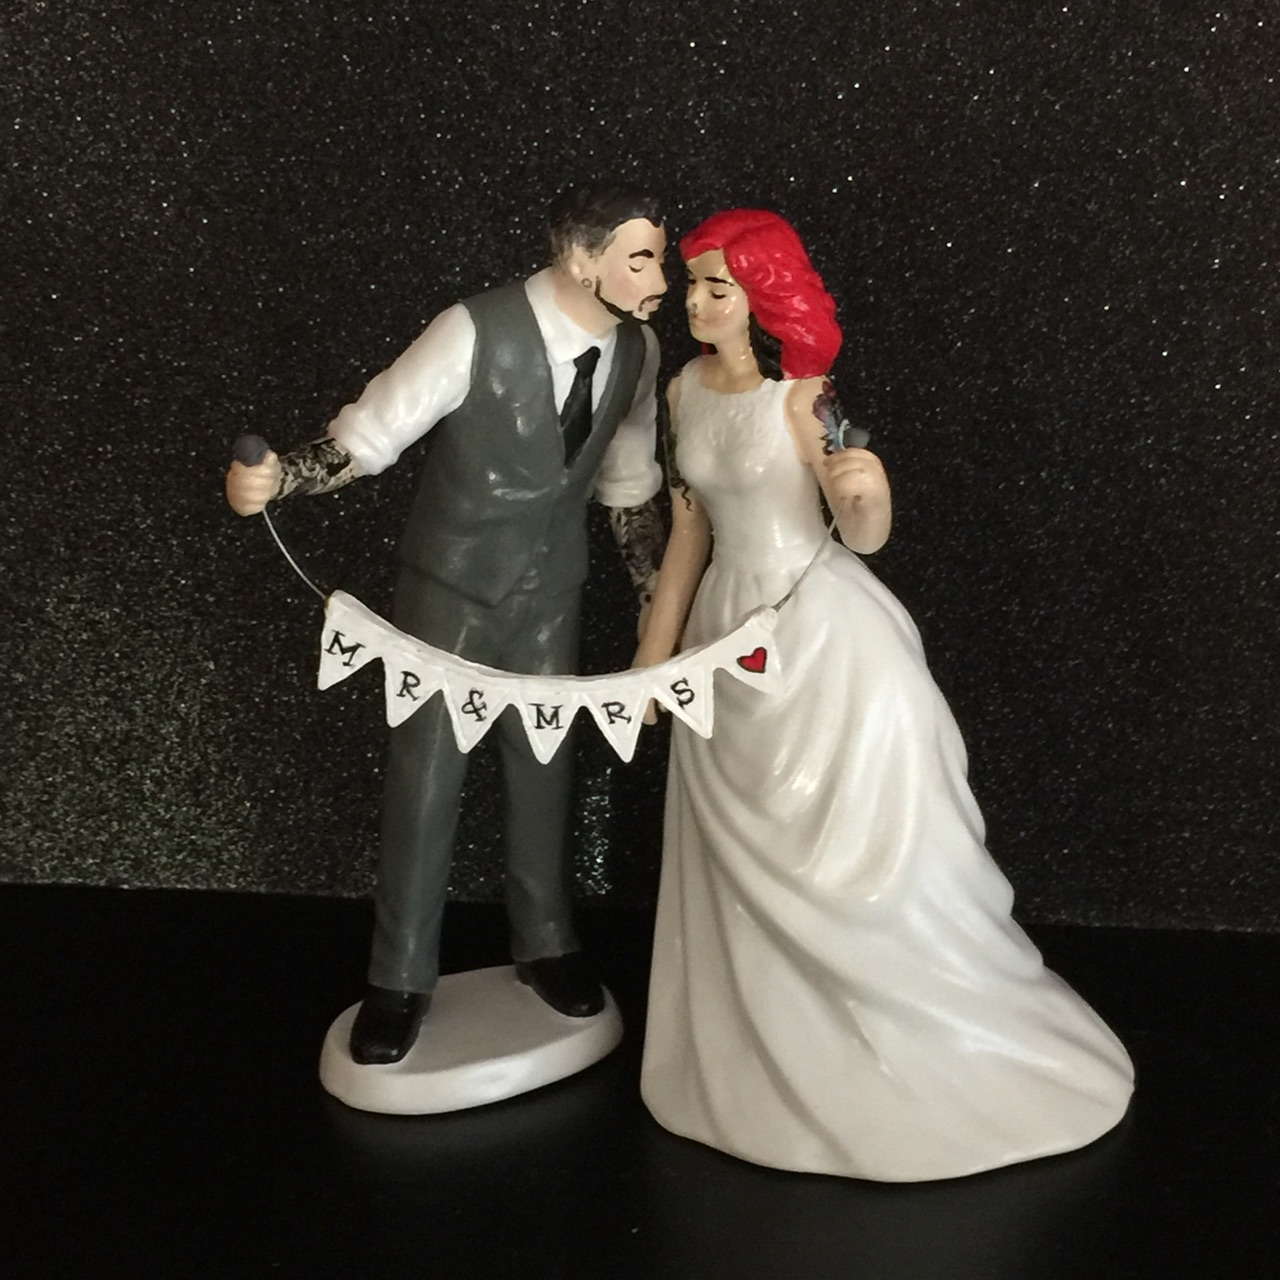 Personalized Tattooed Wedding Cake Topper